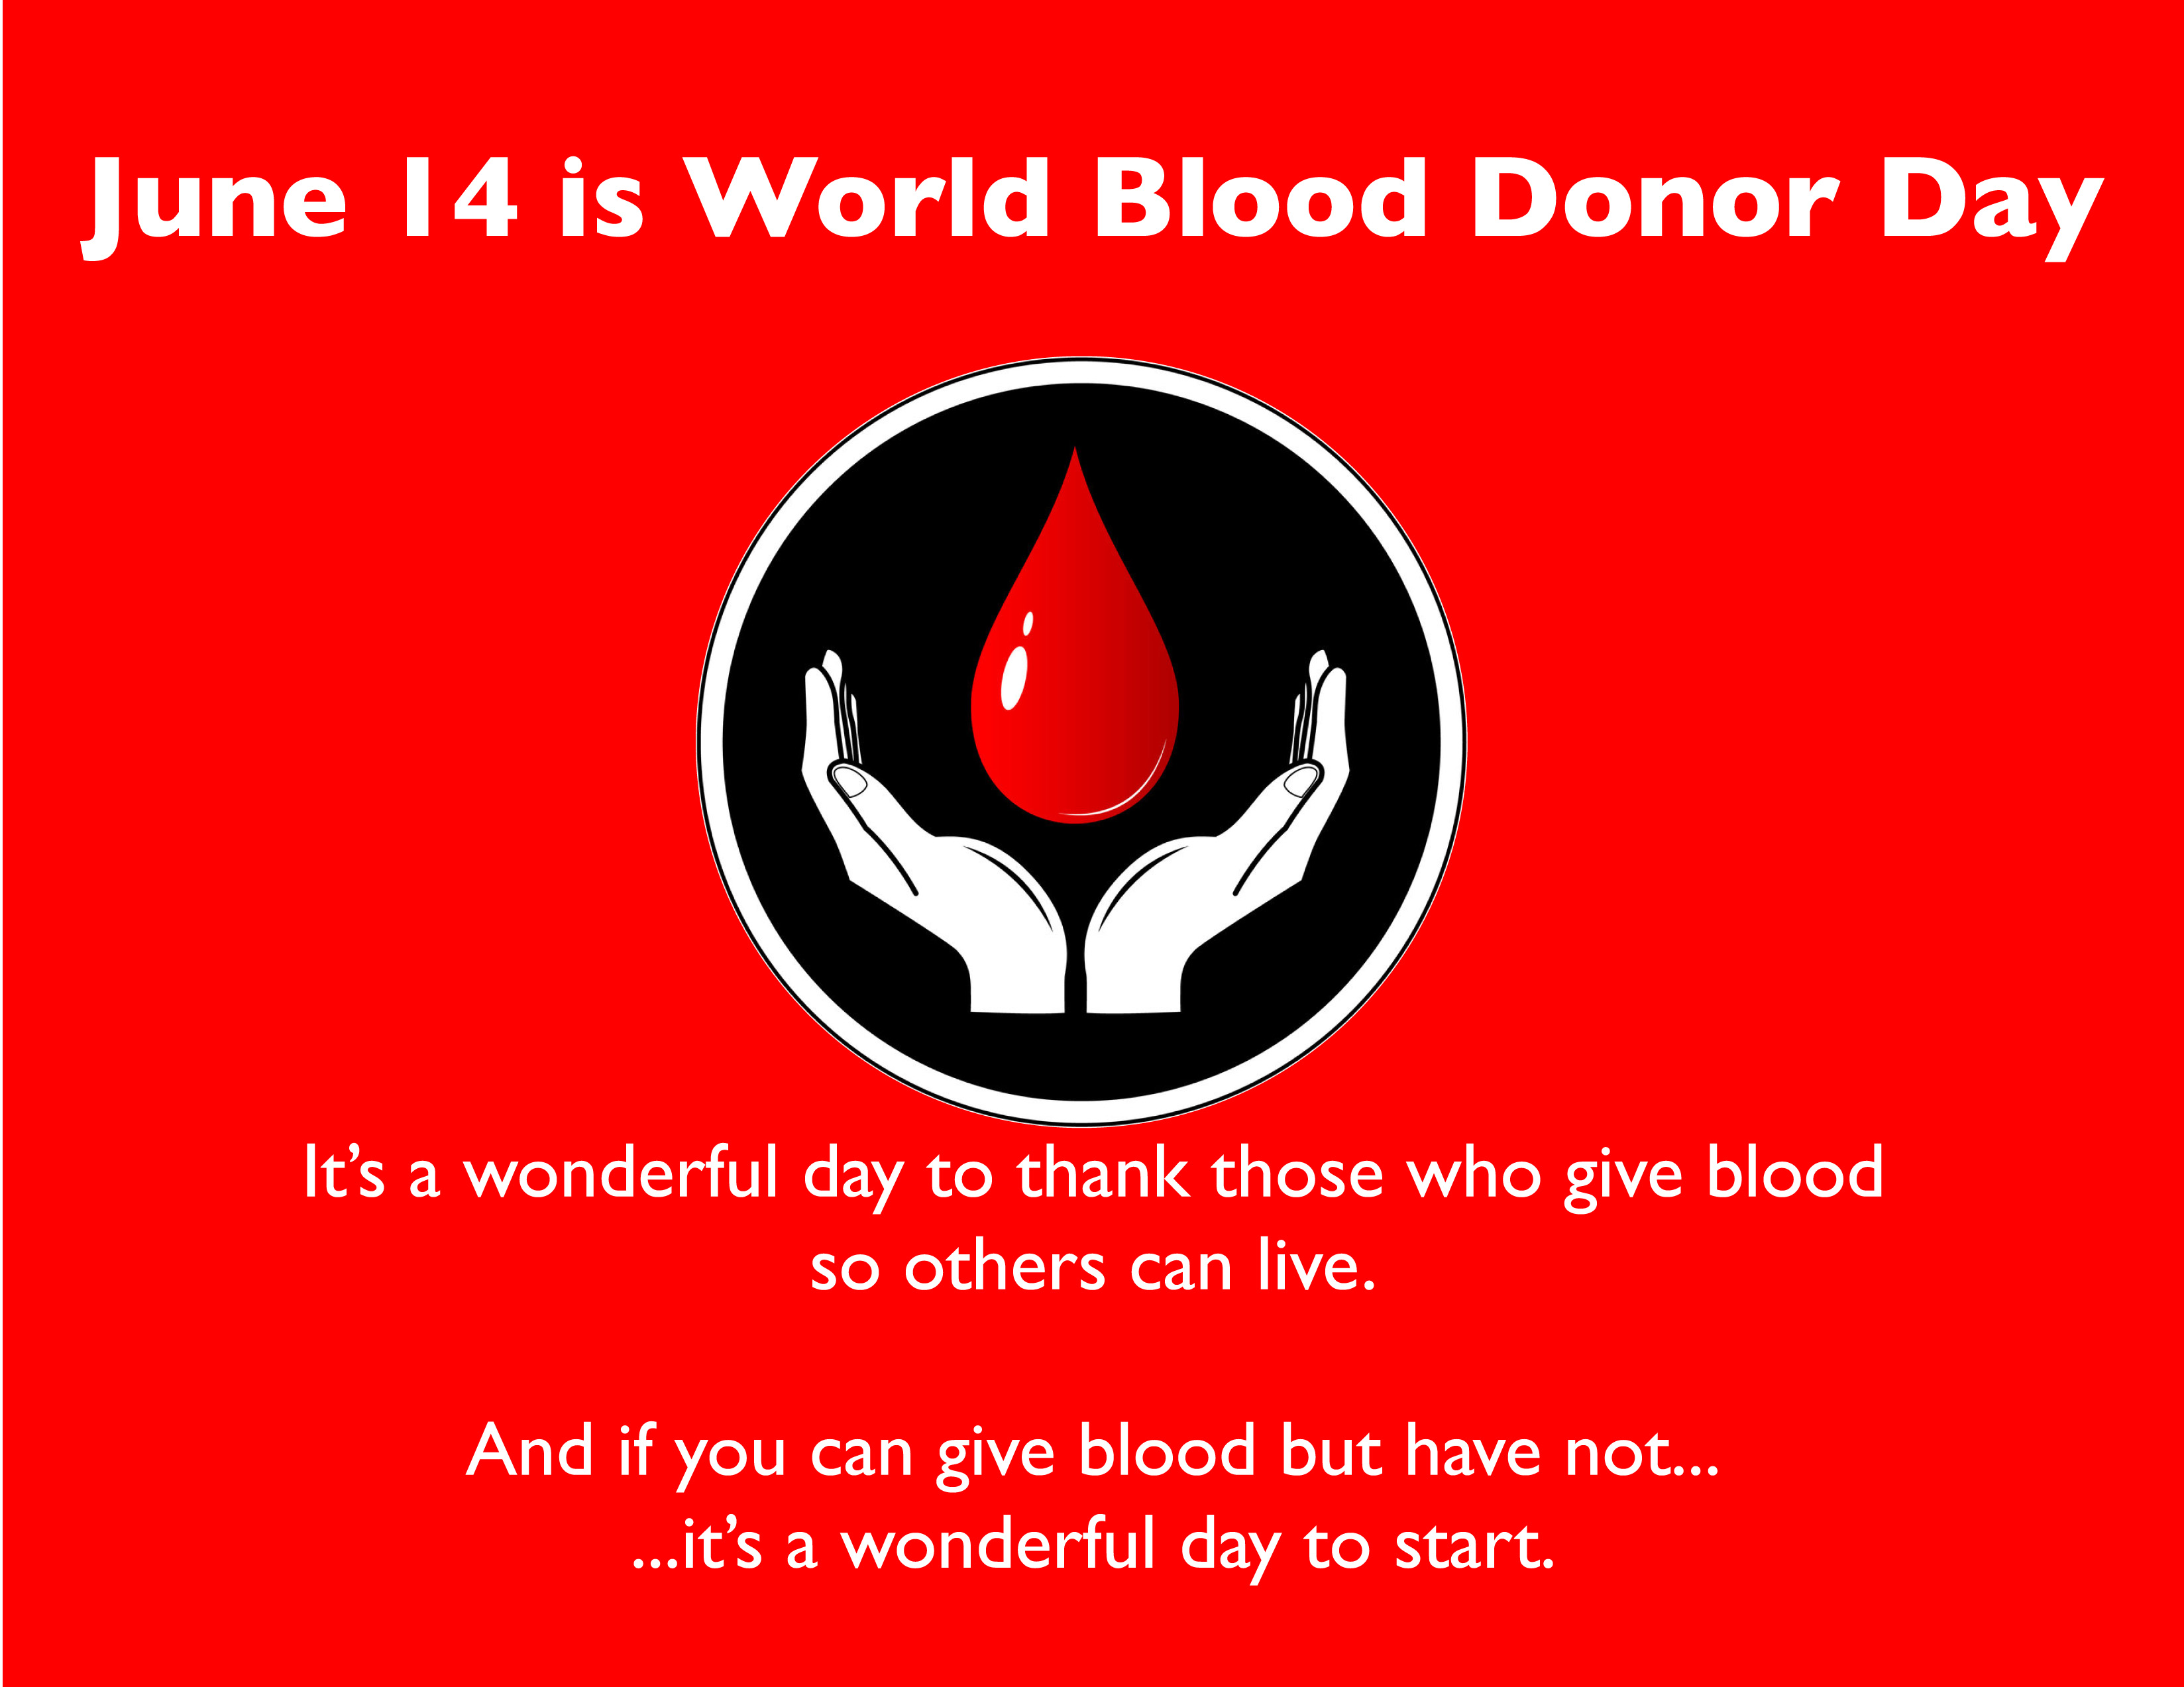 World Blood Donor Day whatsapp dp